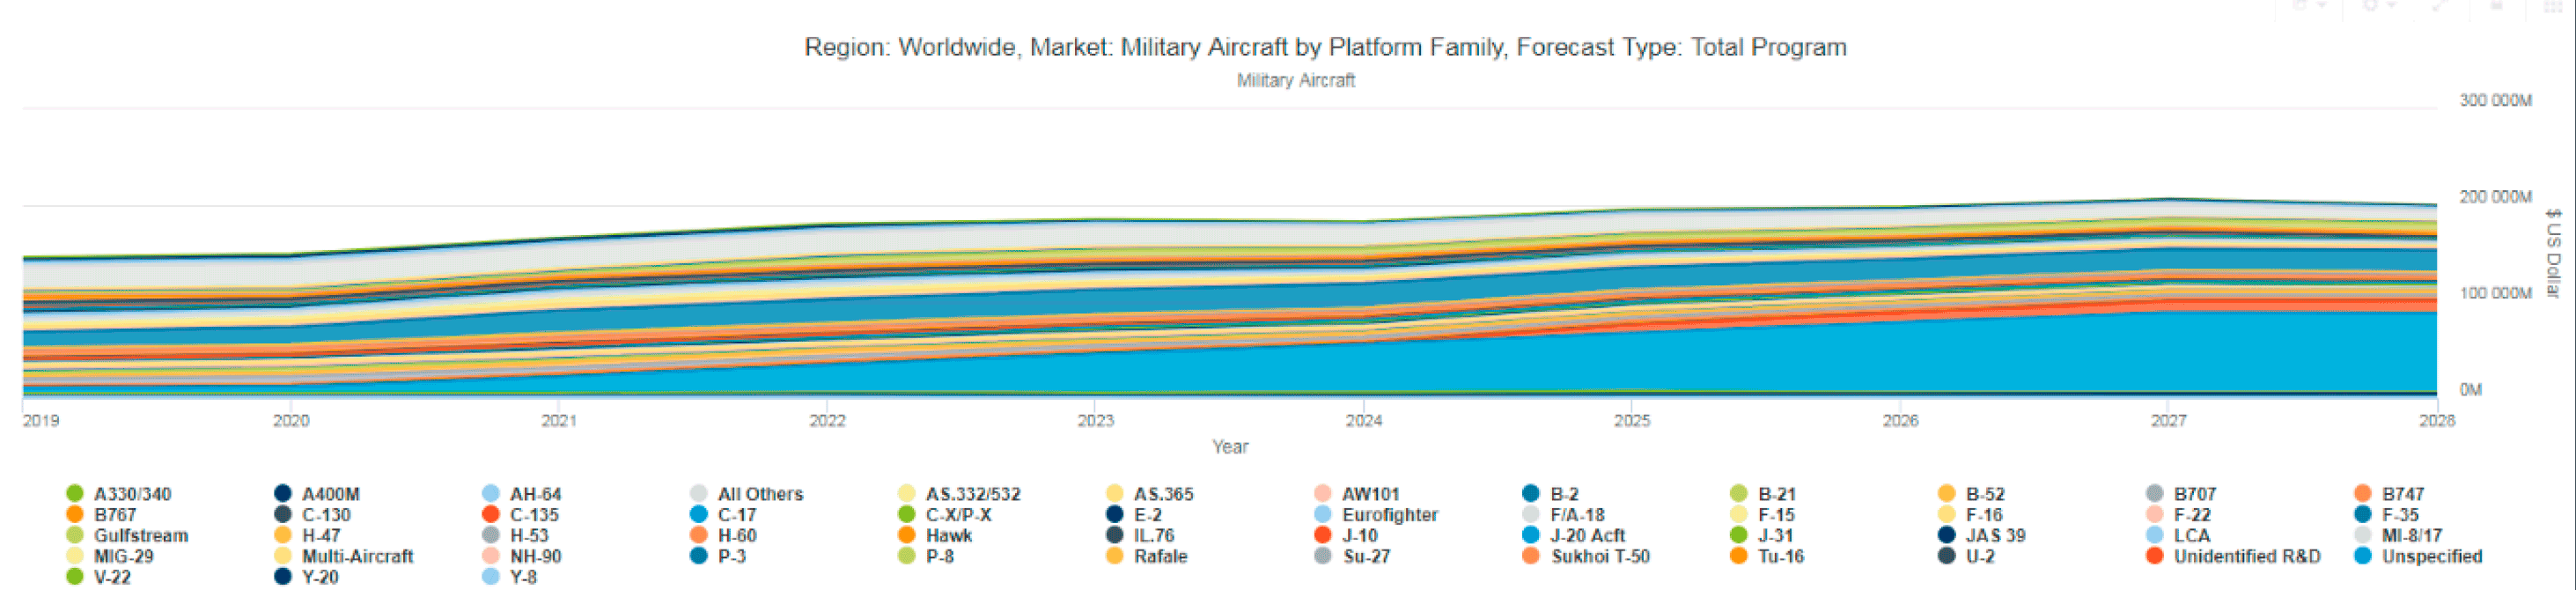 image of market forecast military aircraft